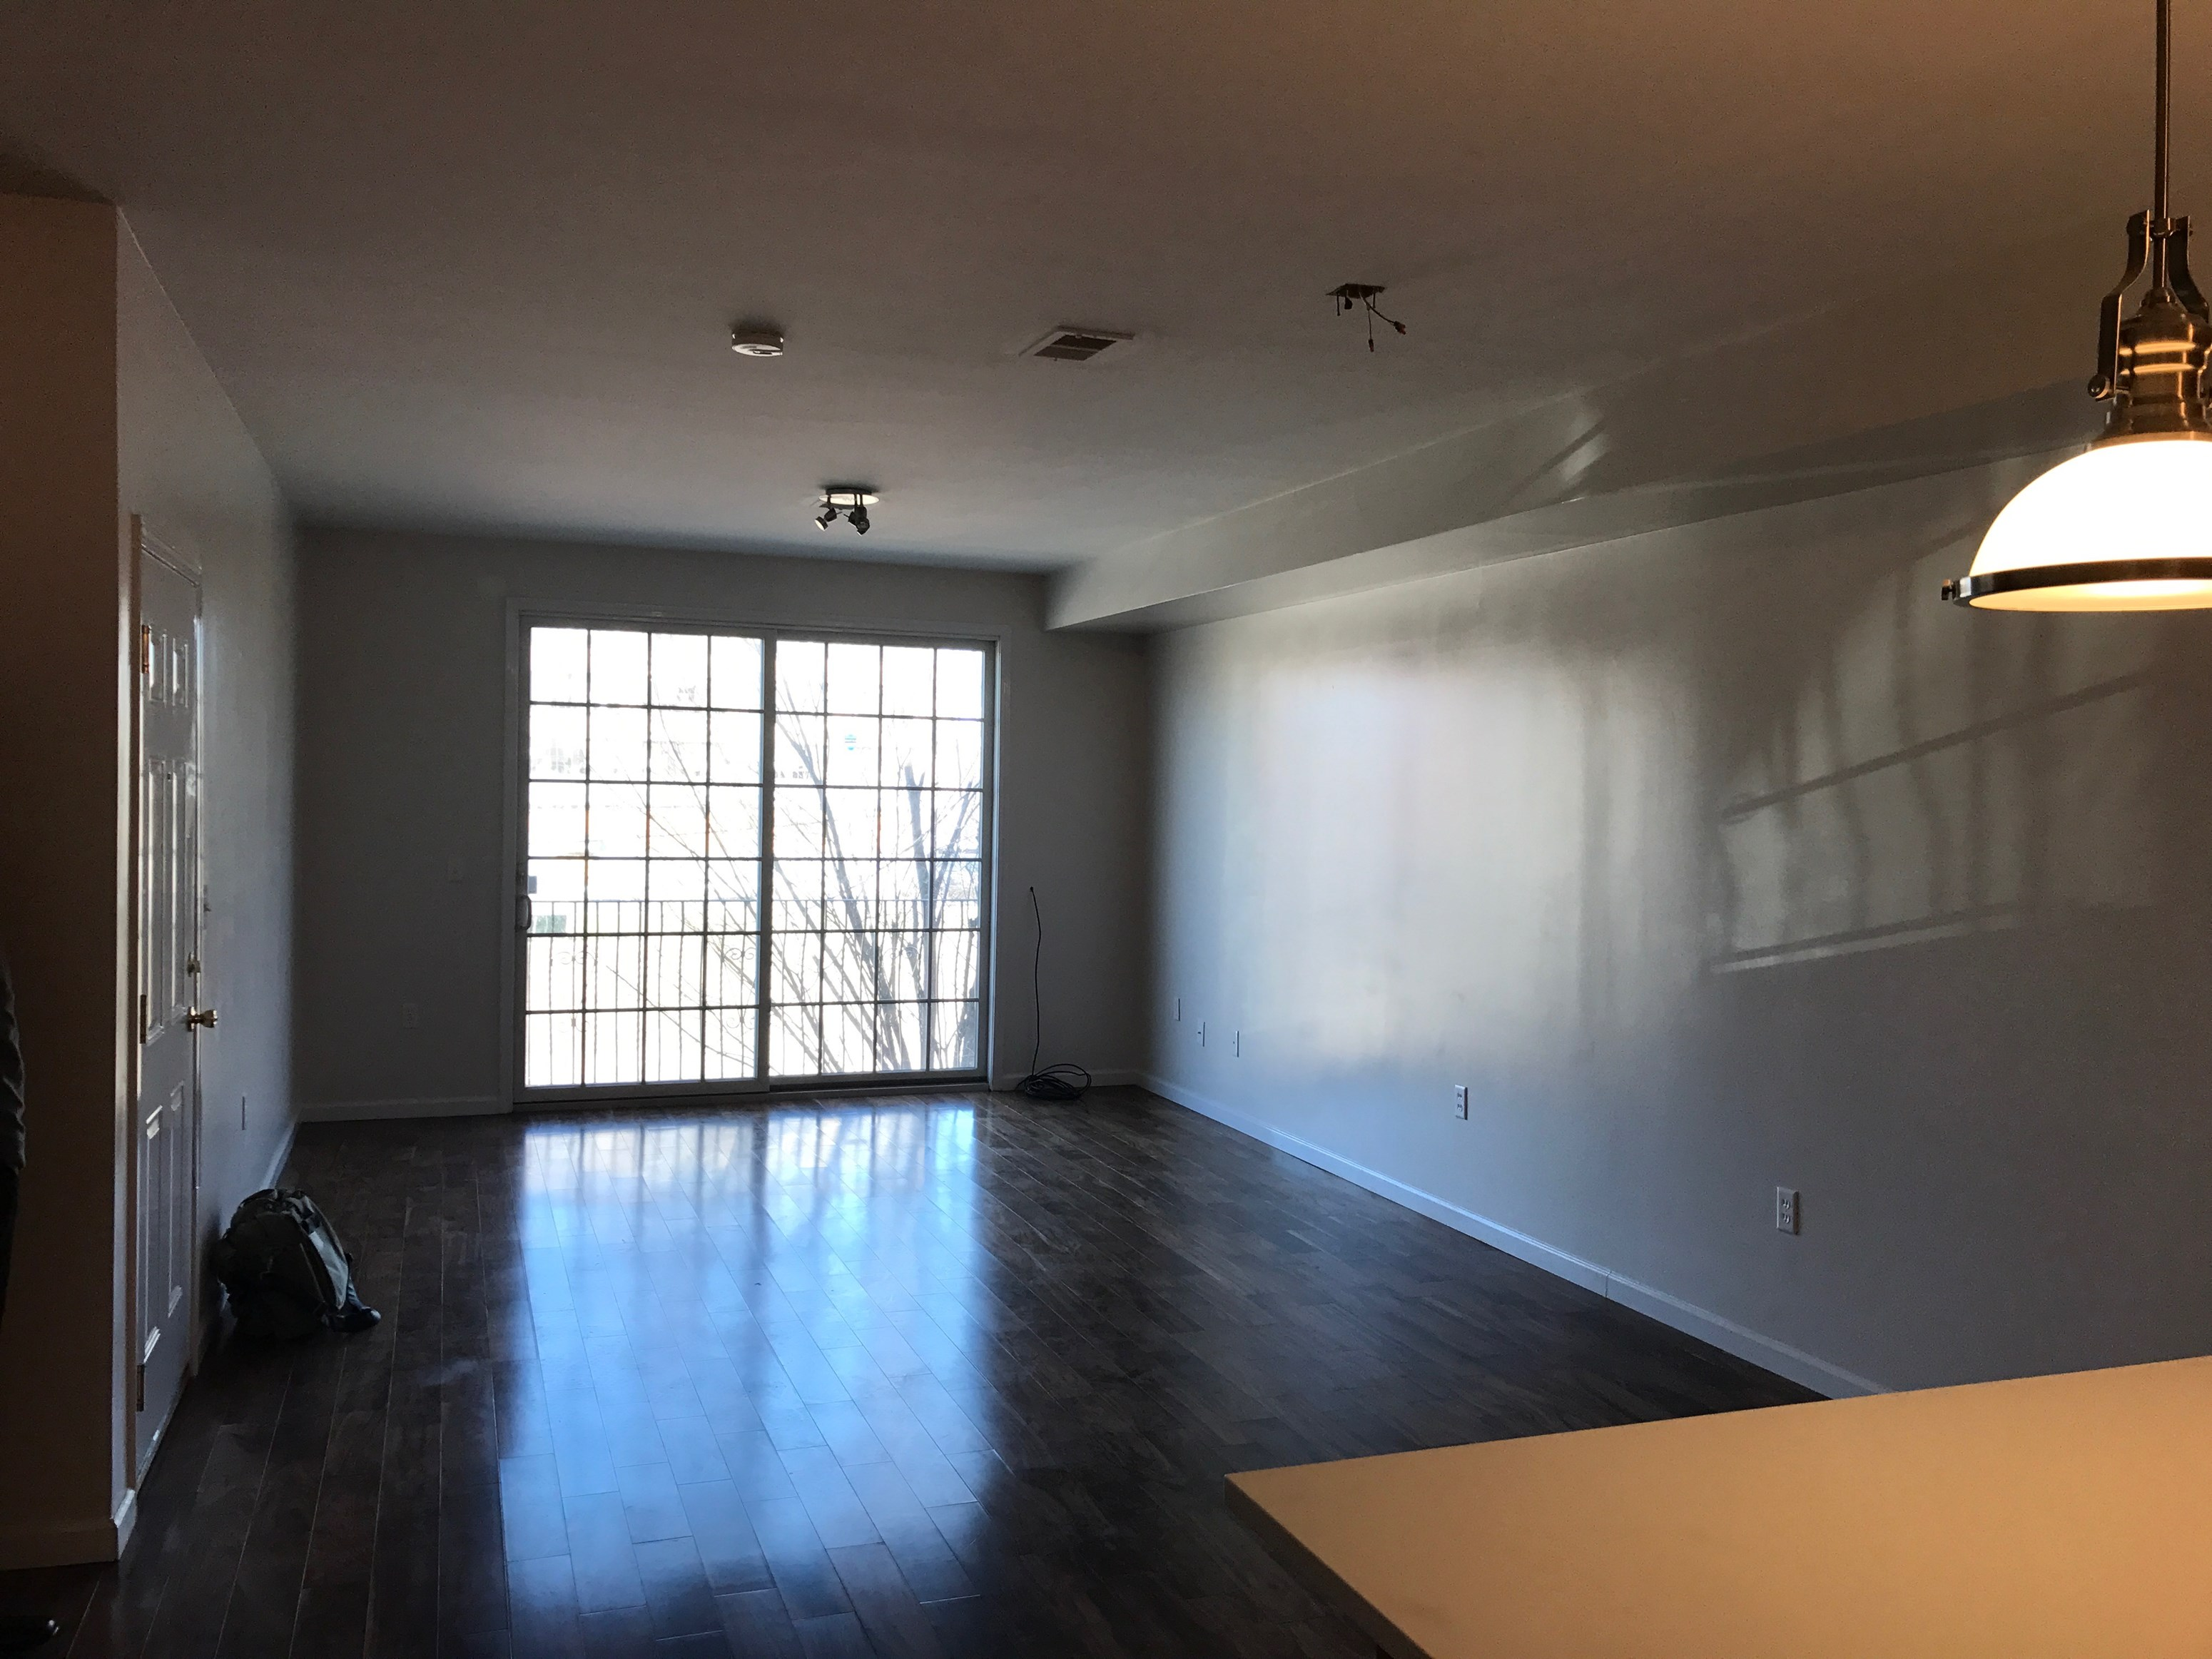 house for rent in new jersey   apartments  flats  commercial space. 2 Bedroom Apartments In Linden Nj For  950 awesome ideas